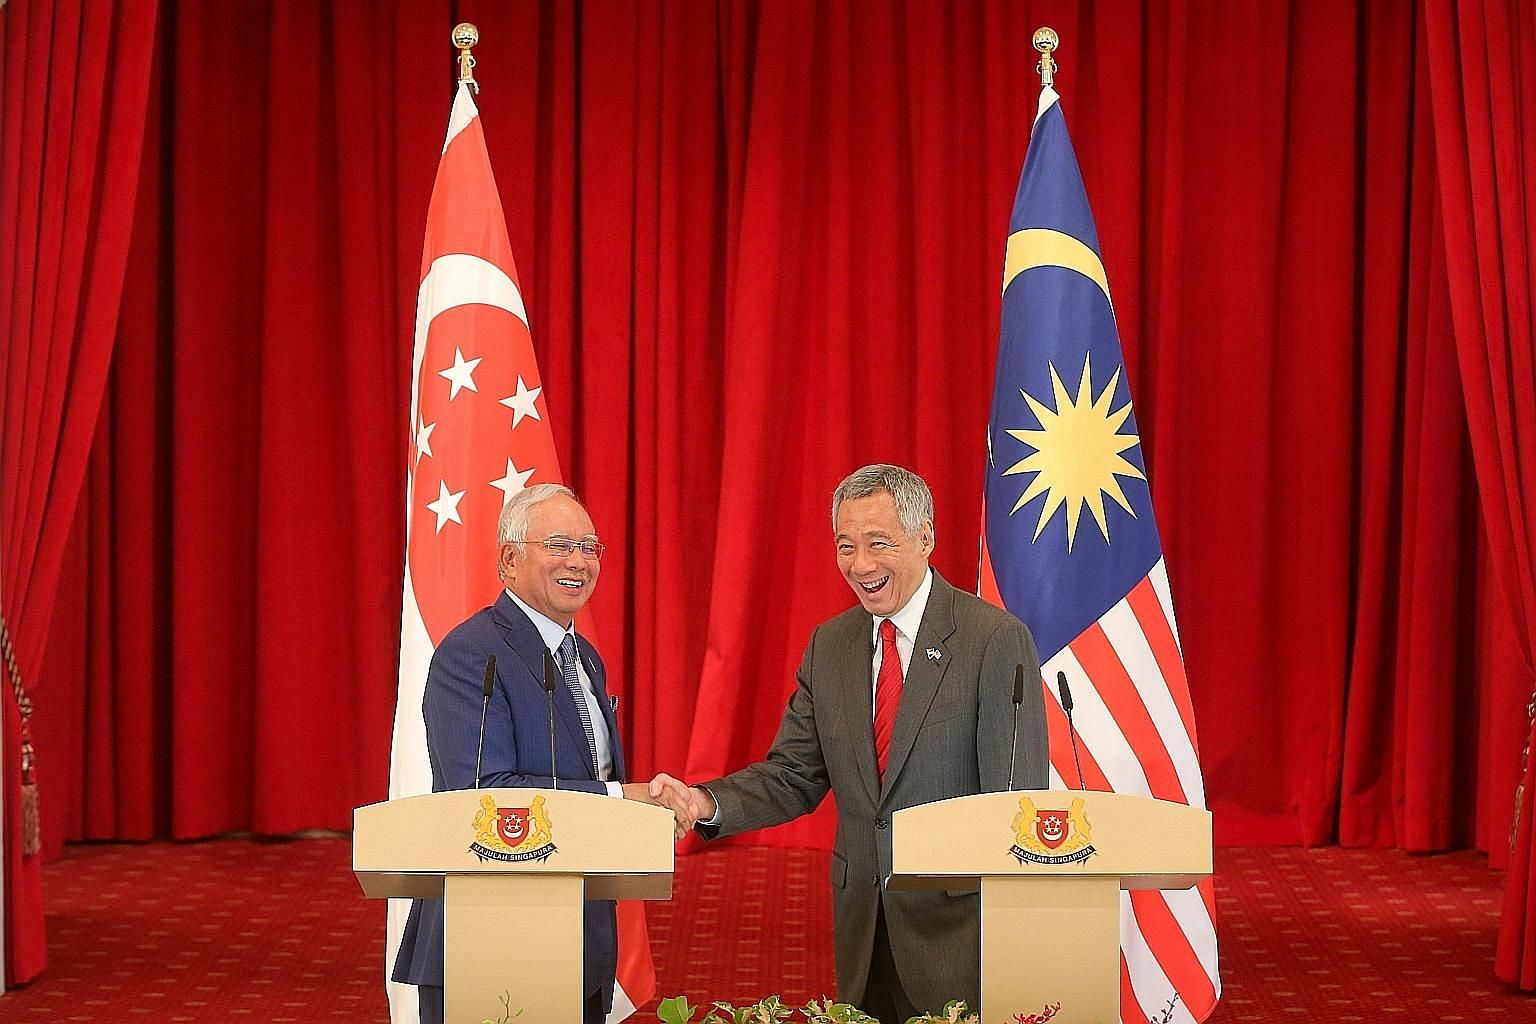 Prime Minister Lee Hsien Loong with his Malaysian counterpart Najib Razak at the Istana, where they held a press conference yesterday after the eighth Singapore-Malaysia Leaders' Retreat.